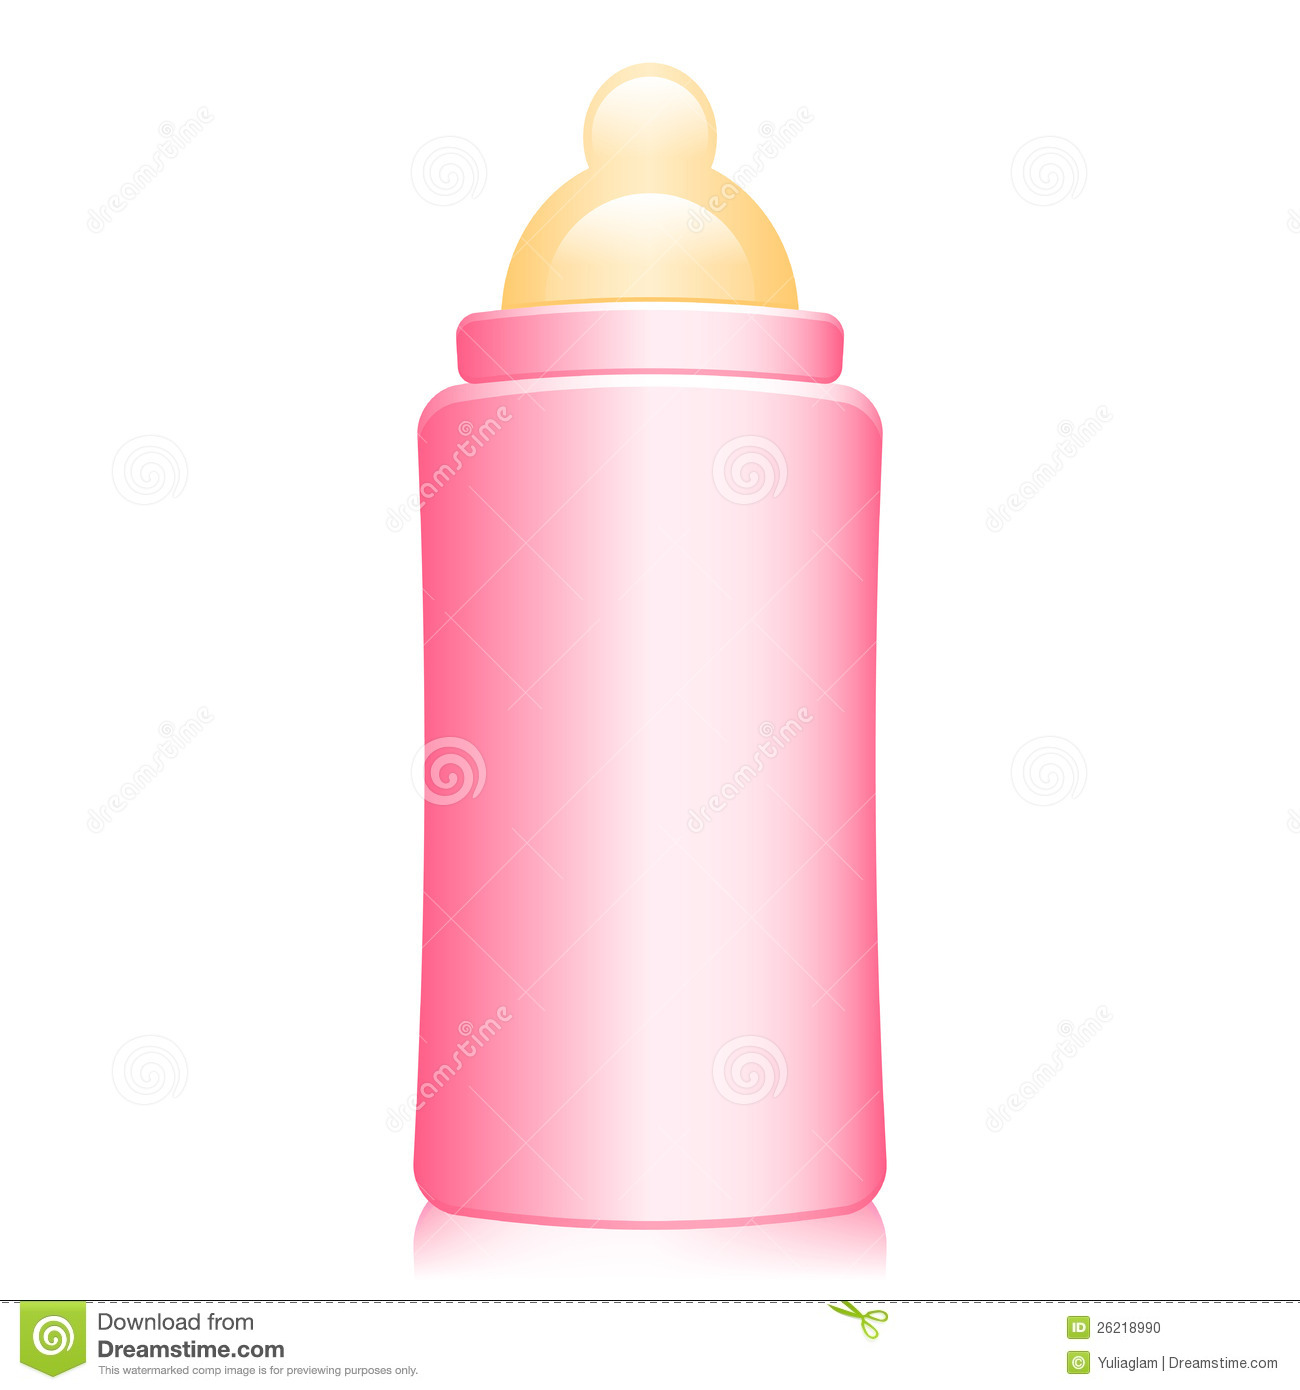 Pink Baby Bottle Stock Photo - Image: 26218990